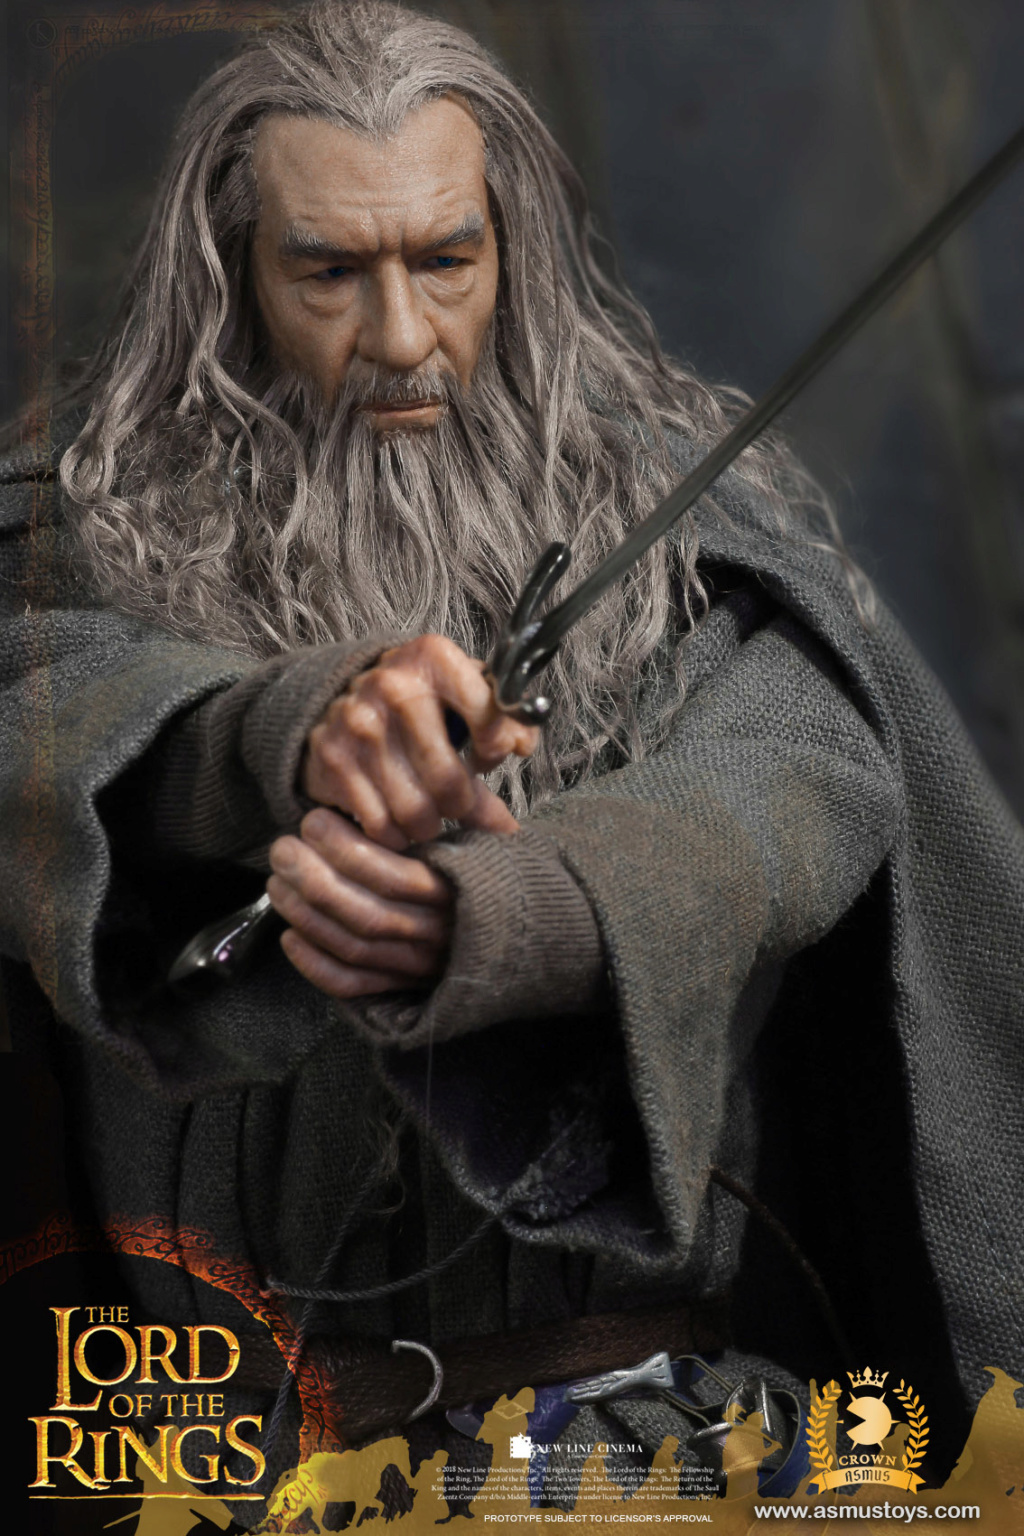 NEW PRODUCT: ASMUS TOYS THE CROWN SERIES : GANDALF THE GREY 1/6 figure 3257